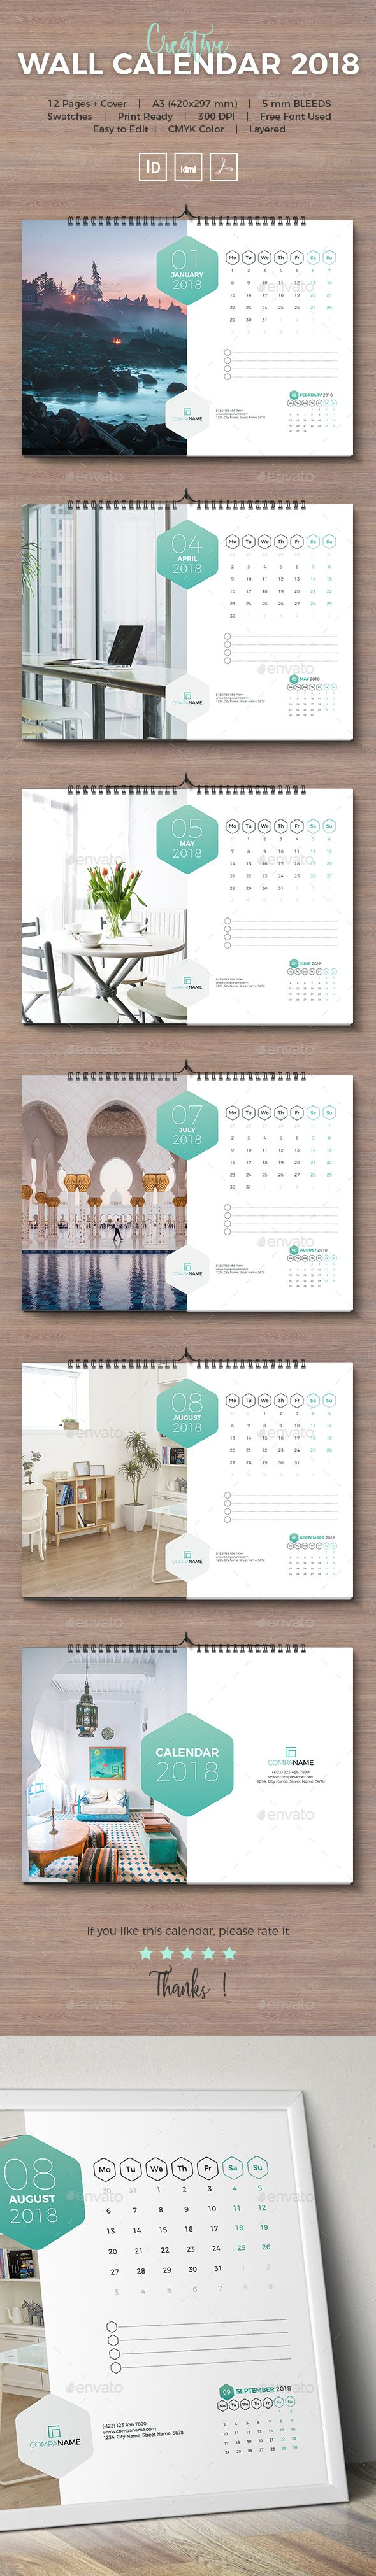 2018 Wall Calendar Landscape | Landscaping, Template and Walls